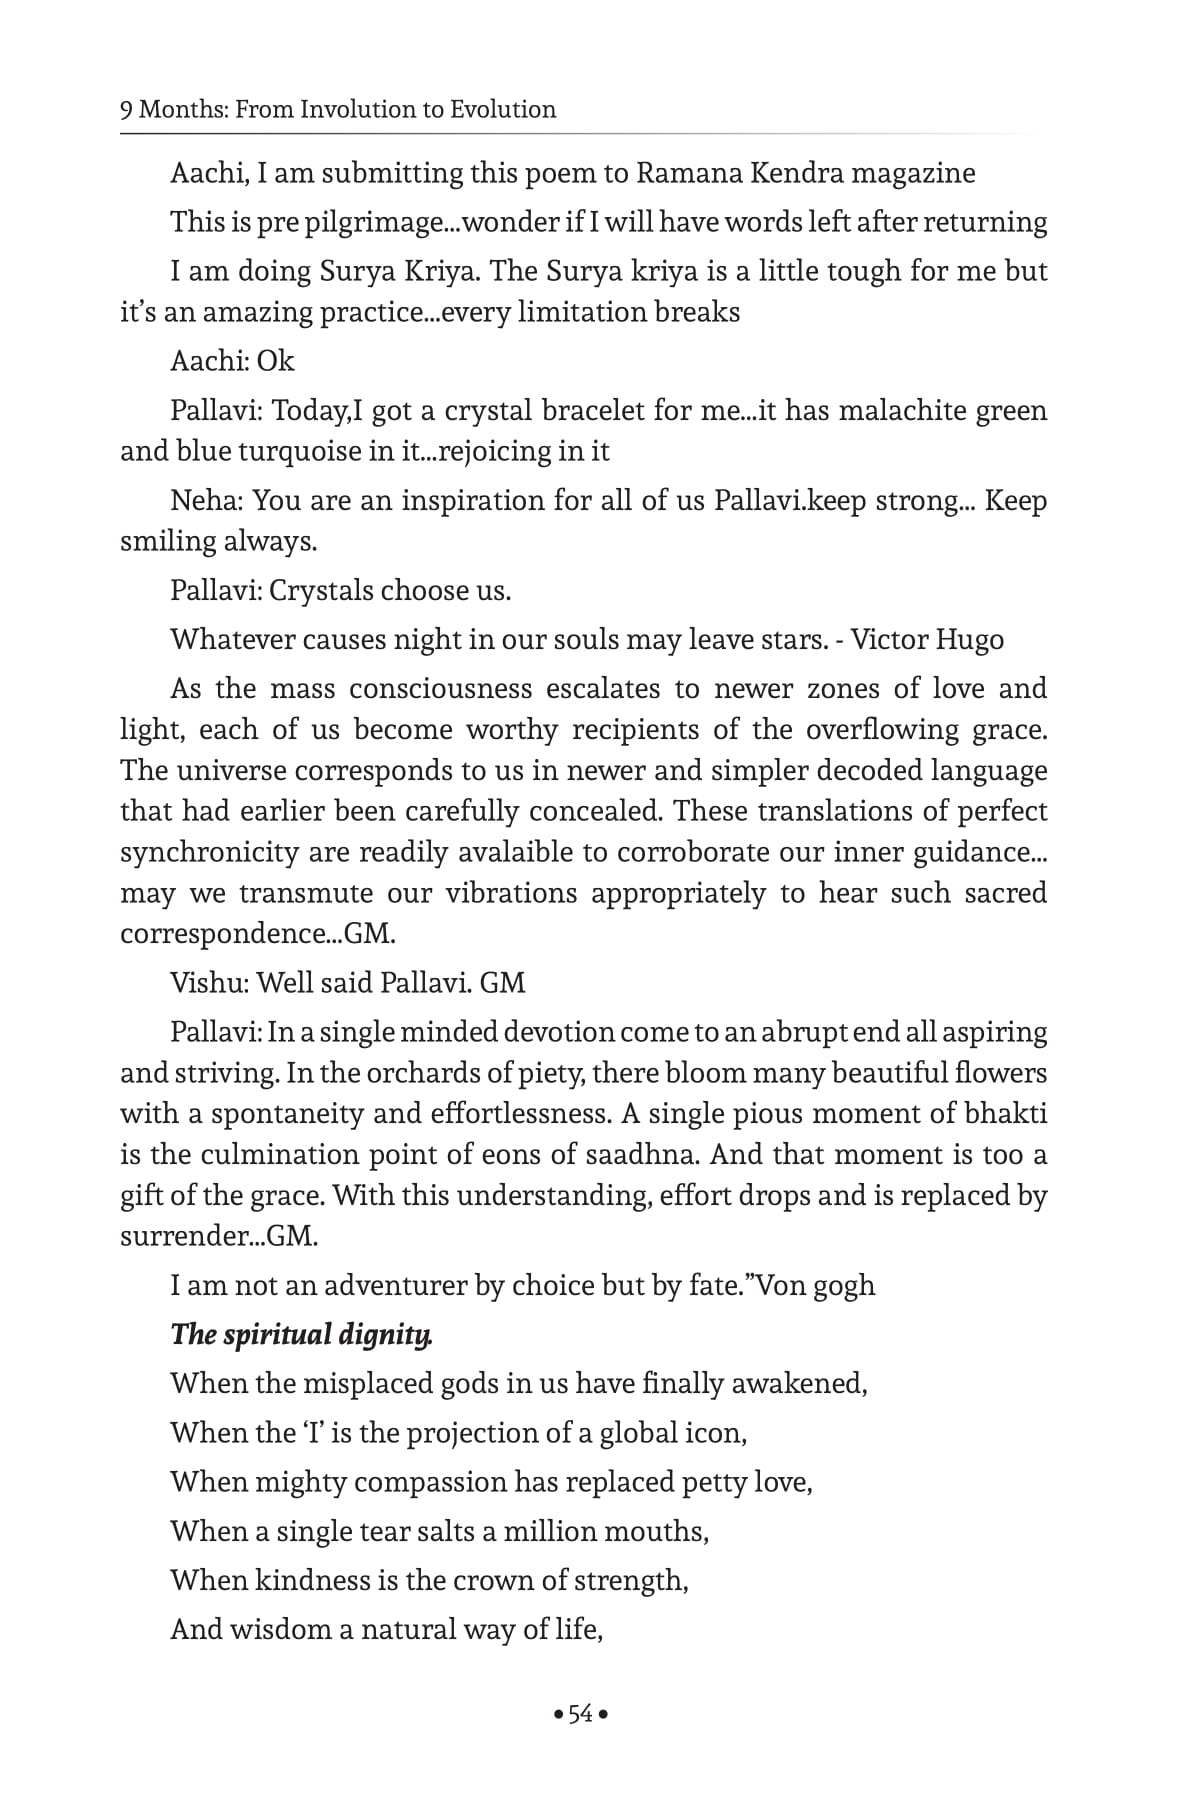 9-Months-From-Involution-to-Evolution-Book-By-Dr-Pallavi-Kwatra-080.jpg